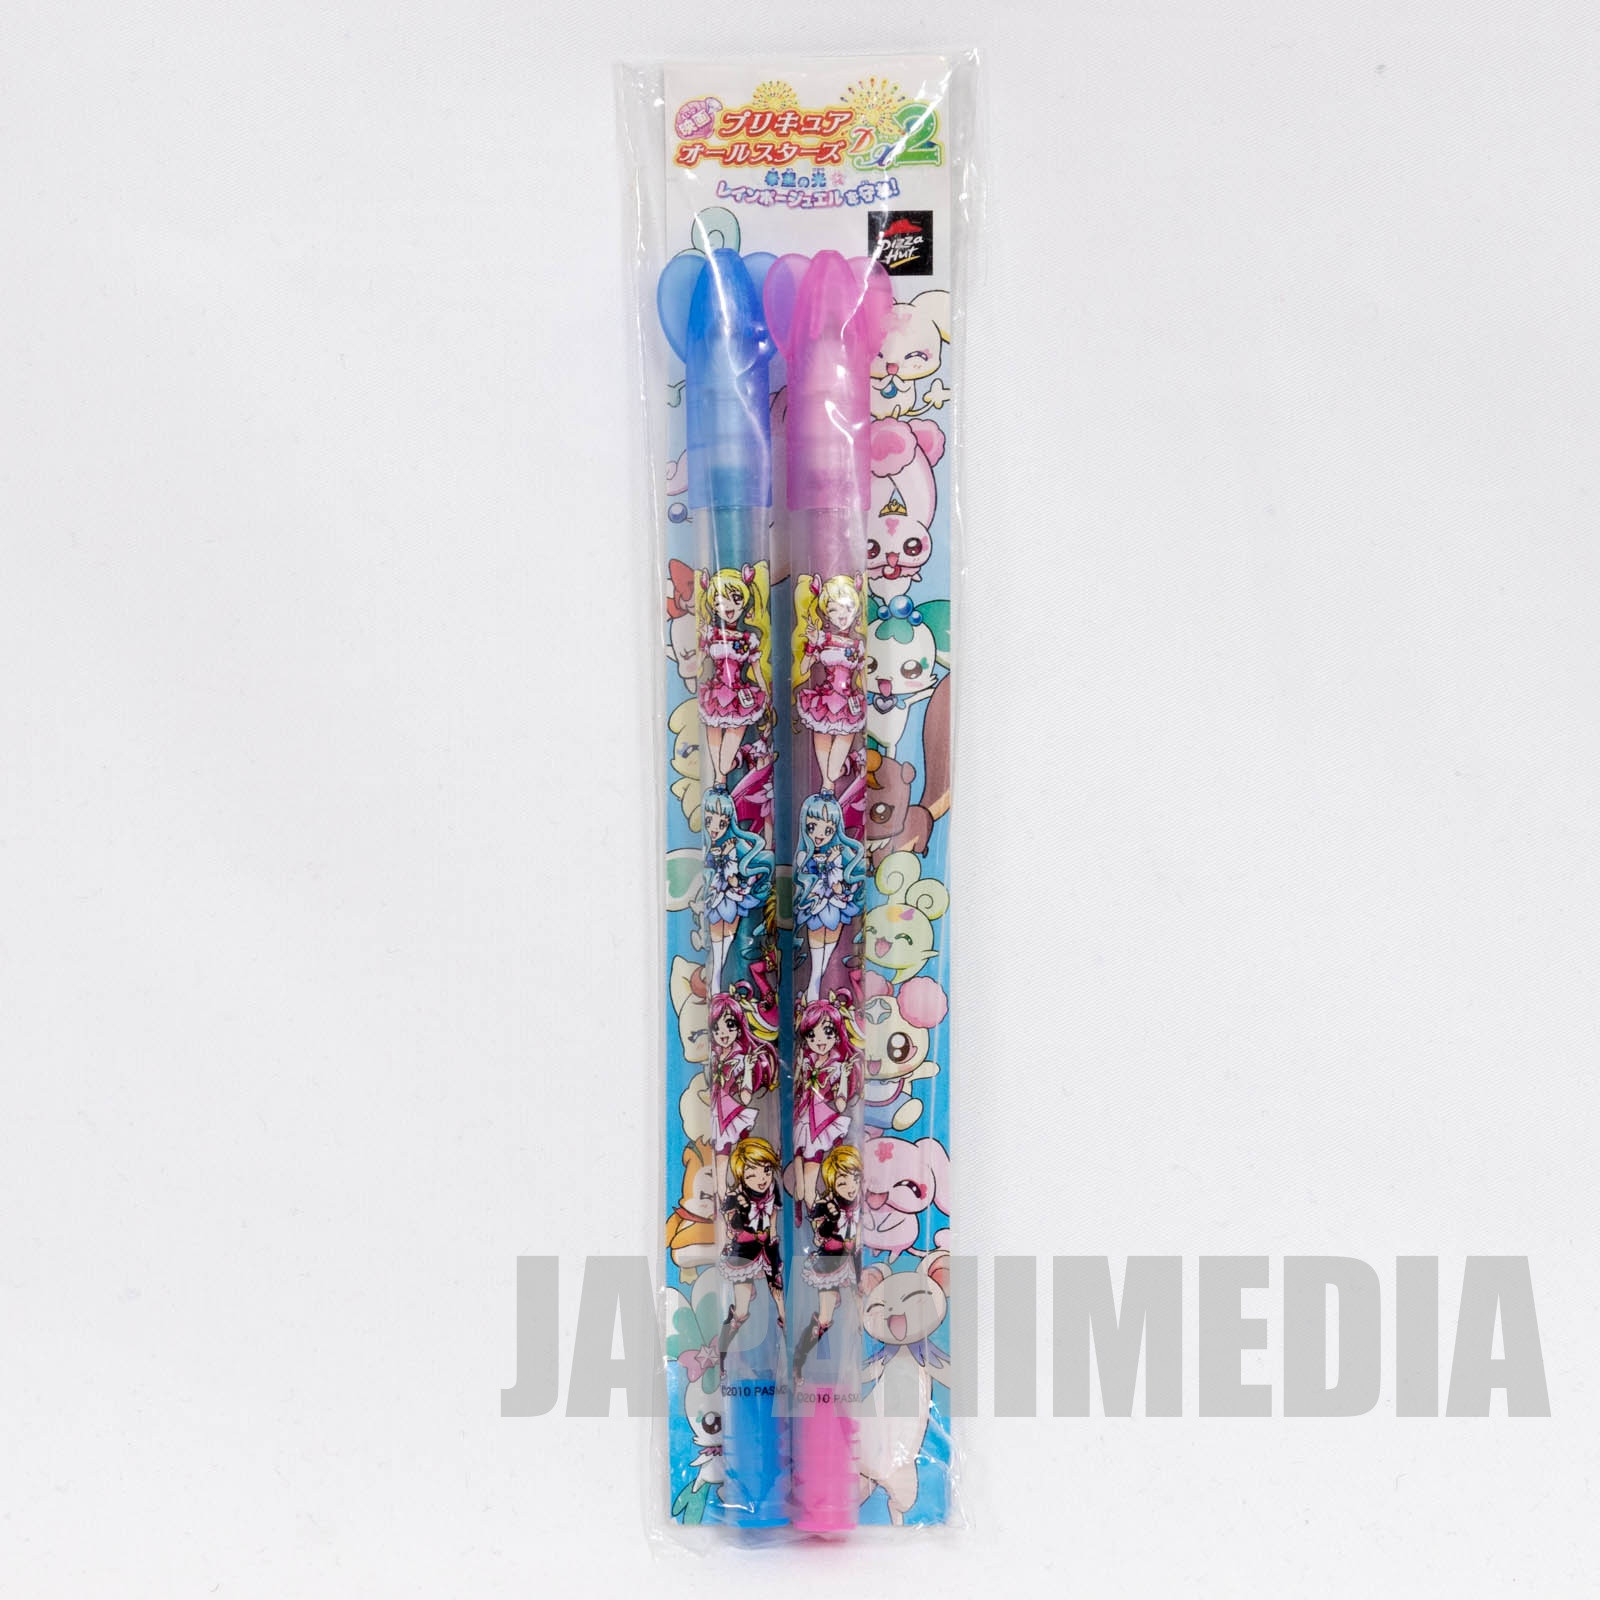 Pretty Cure All Stars Color Ballpoint Pen 2pc set JAPAN ANIME